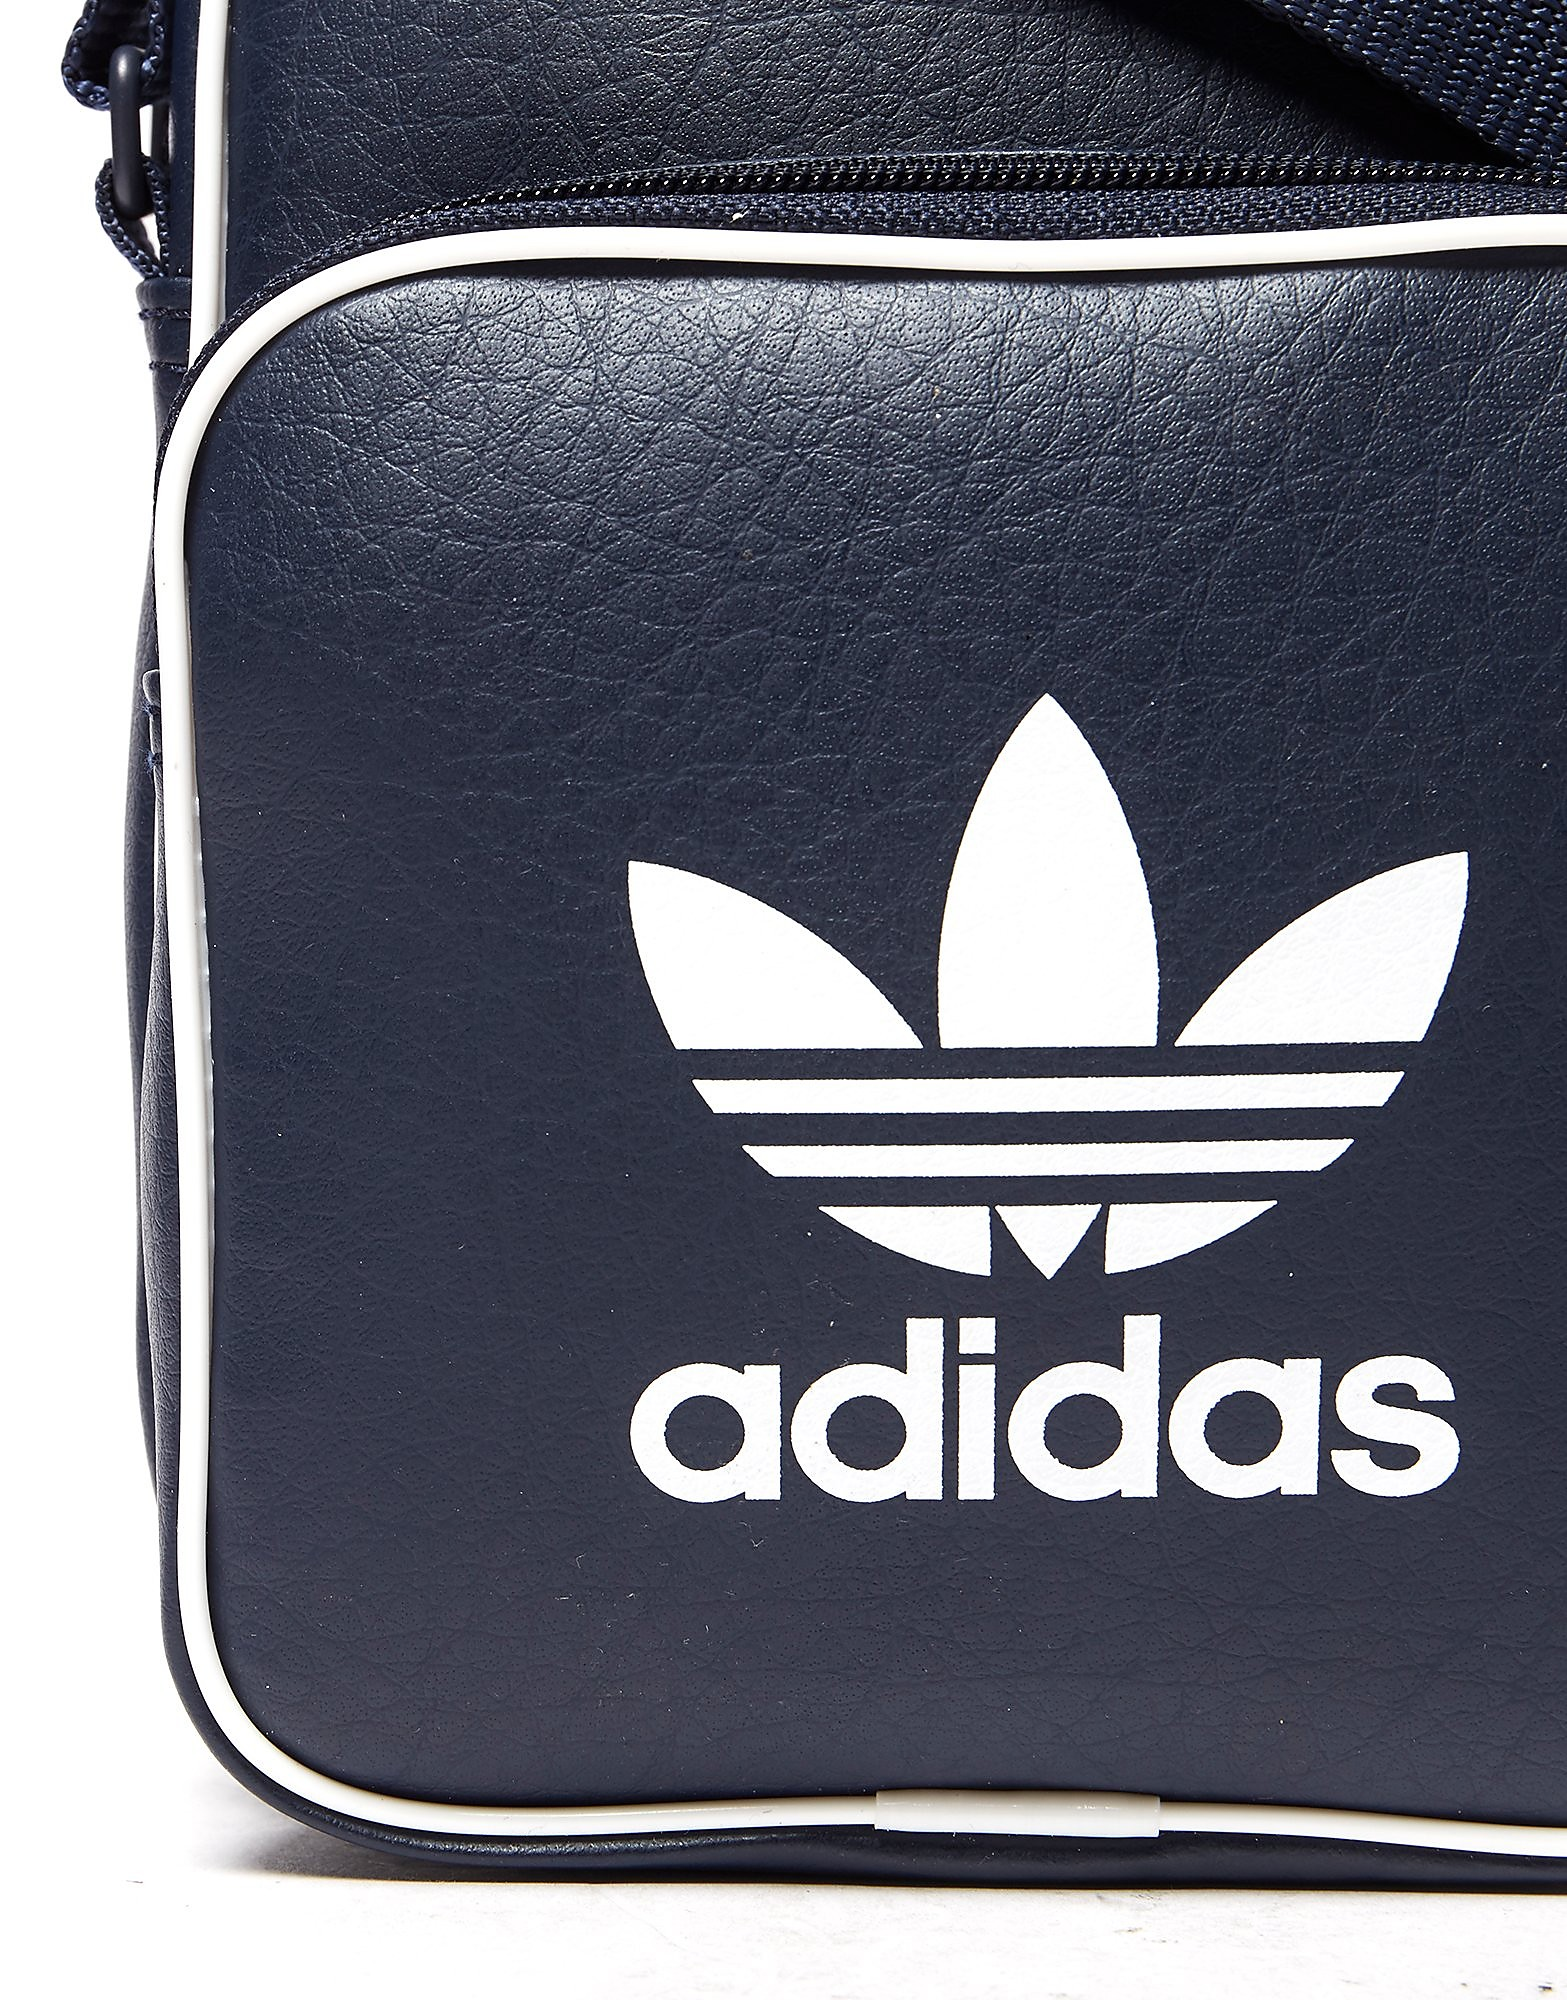 adidas Originals Classic Mini Bag